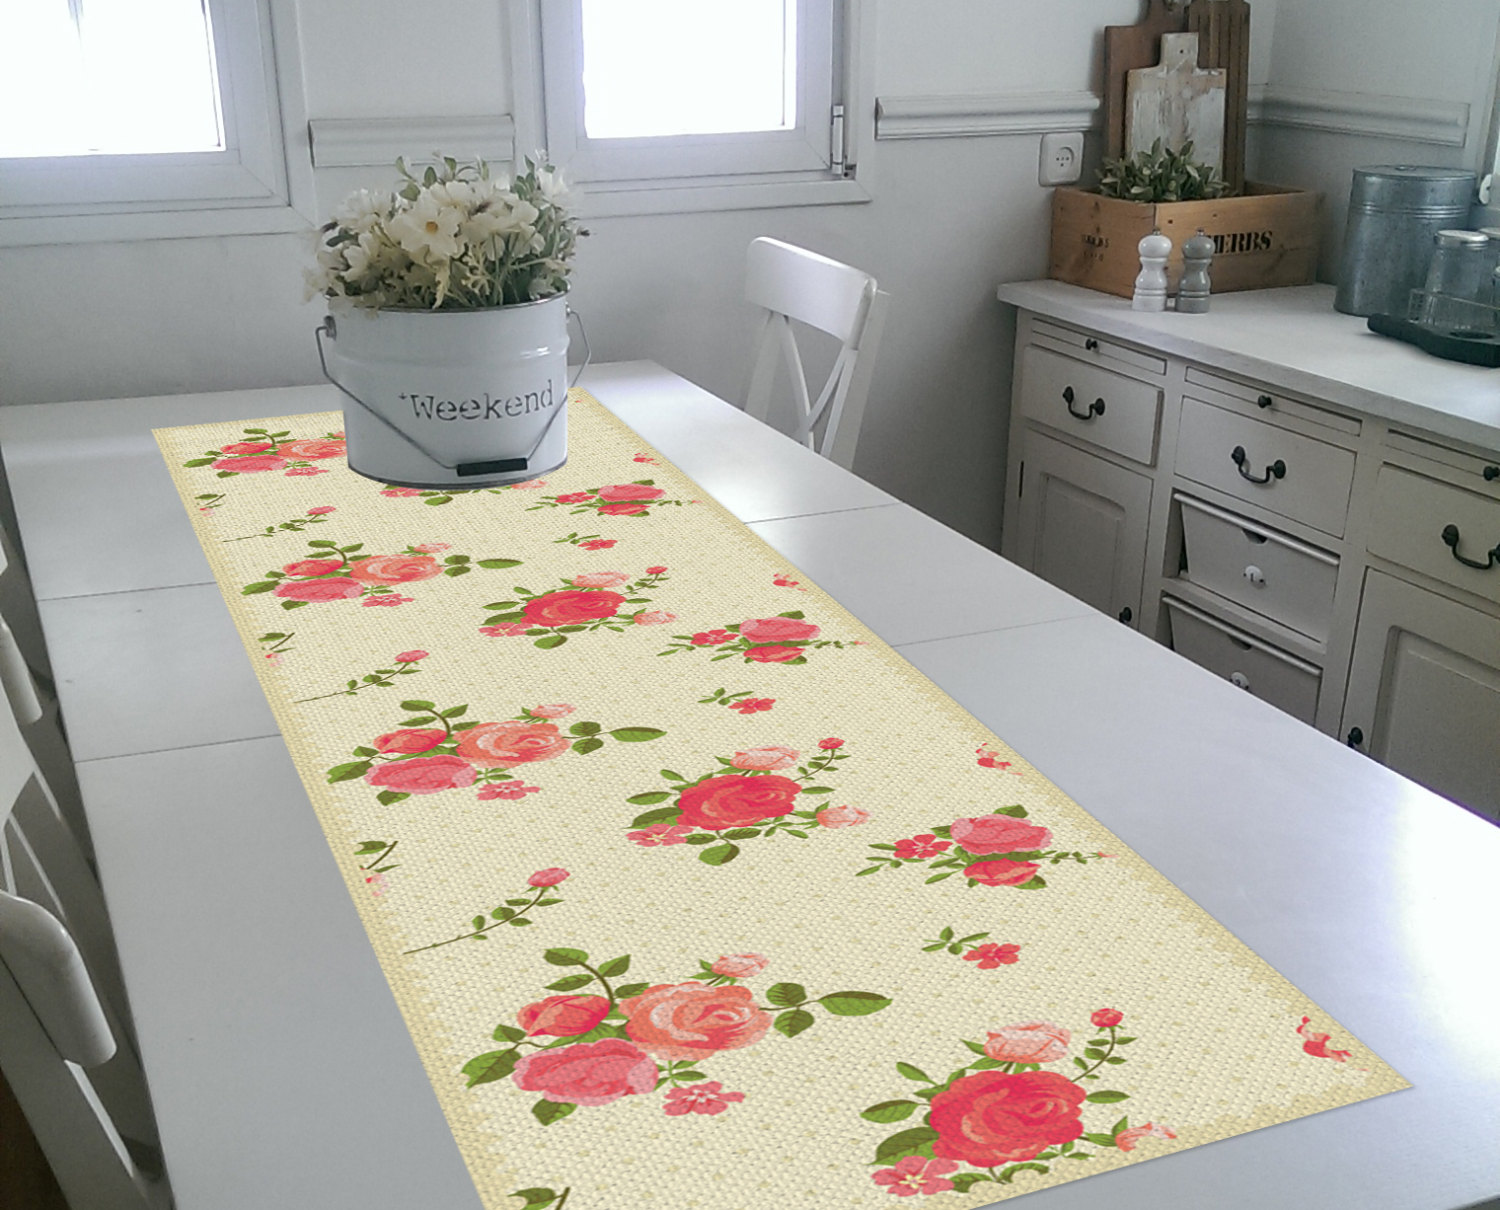 free-shipping-flowers-table-runner-wedding-table-runner-flowers-design-placemat-no-05-5897b24e3.jpg